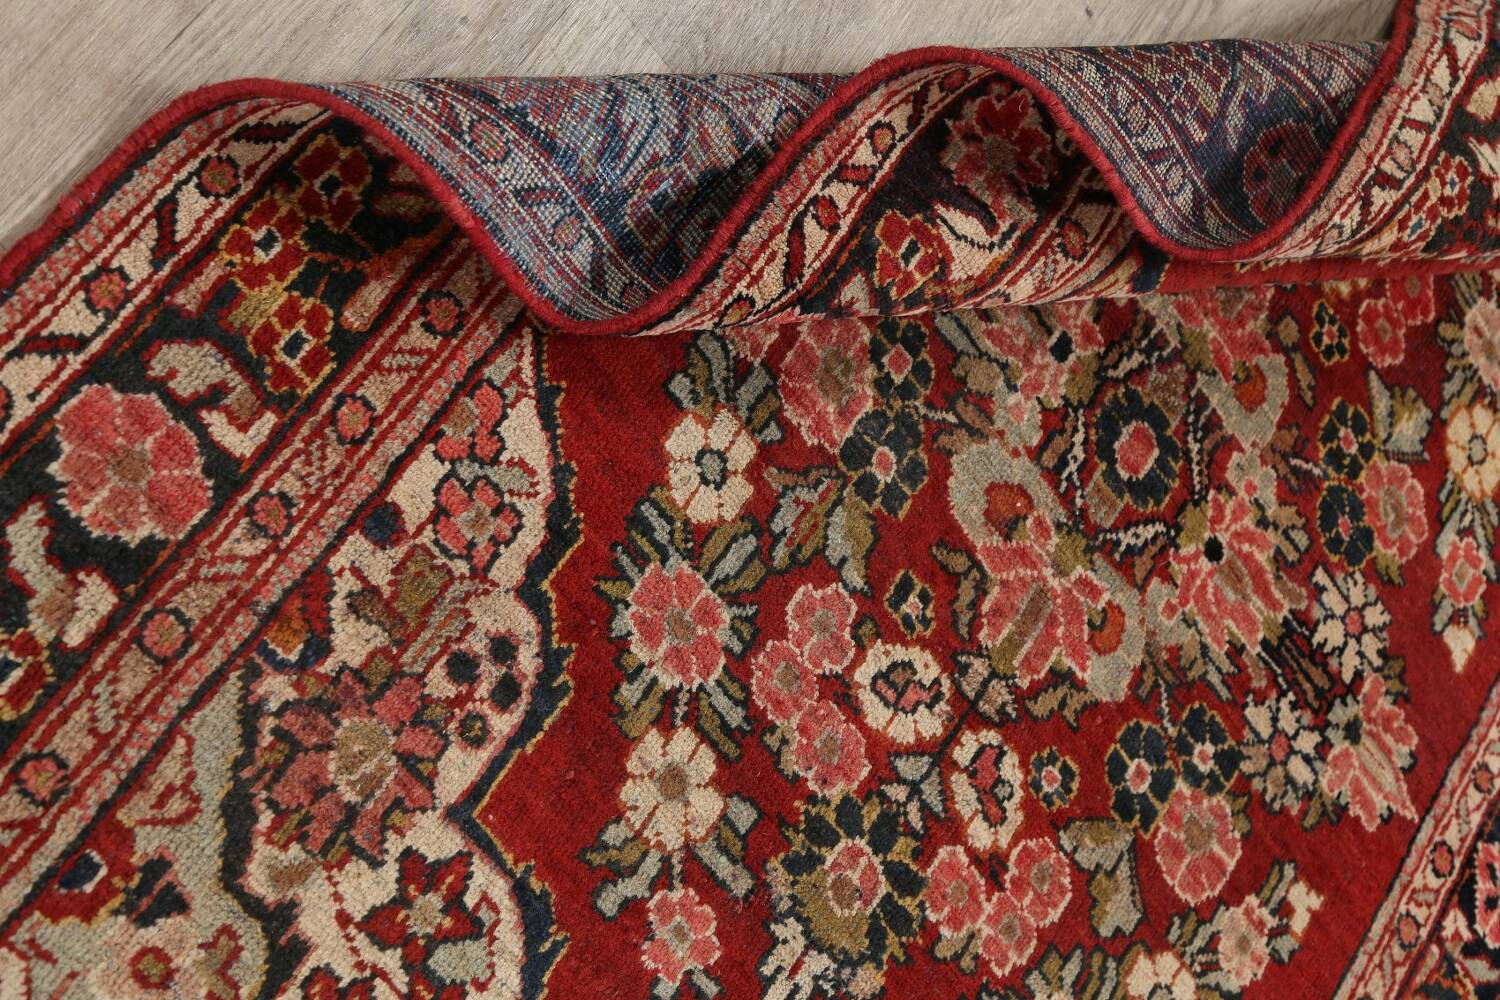 Antique Floral Mahal Persian Area Rug 4x7 image 17